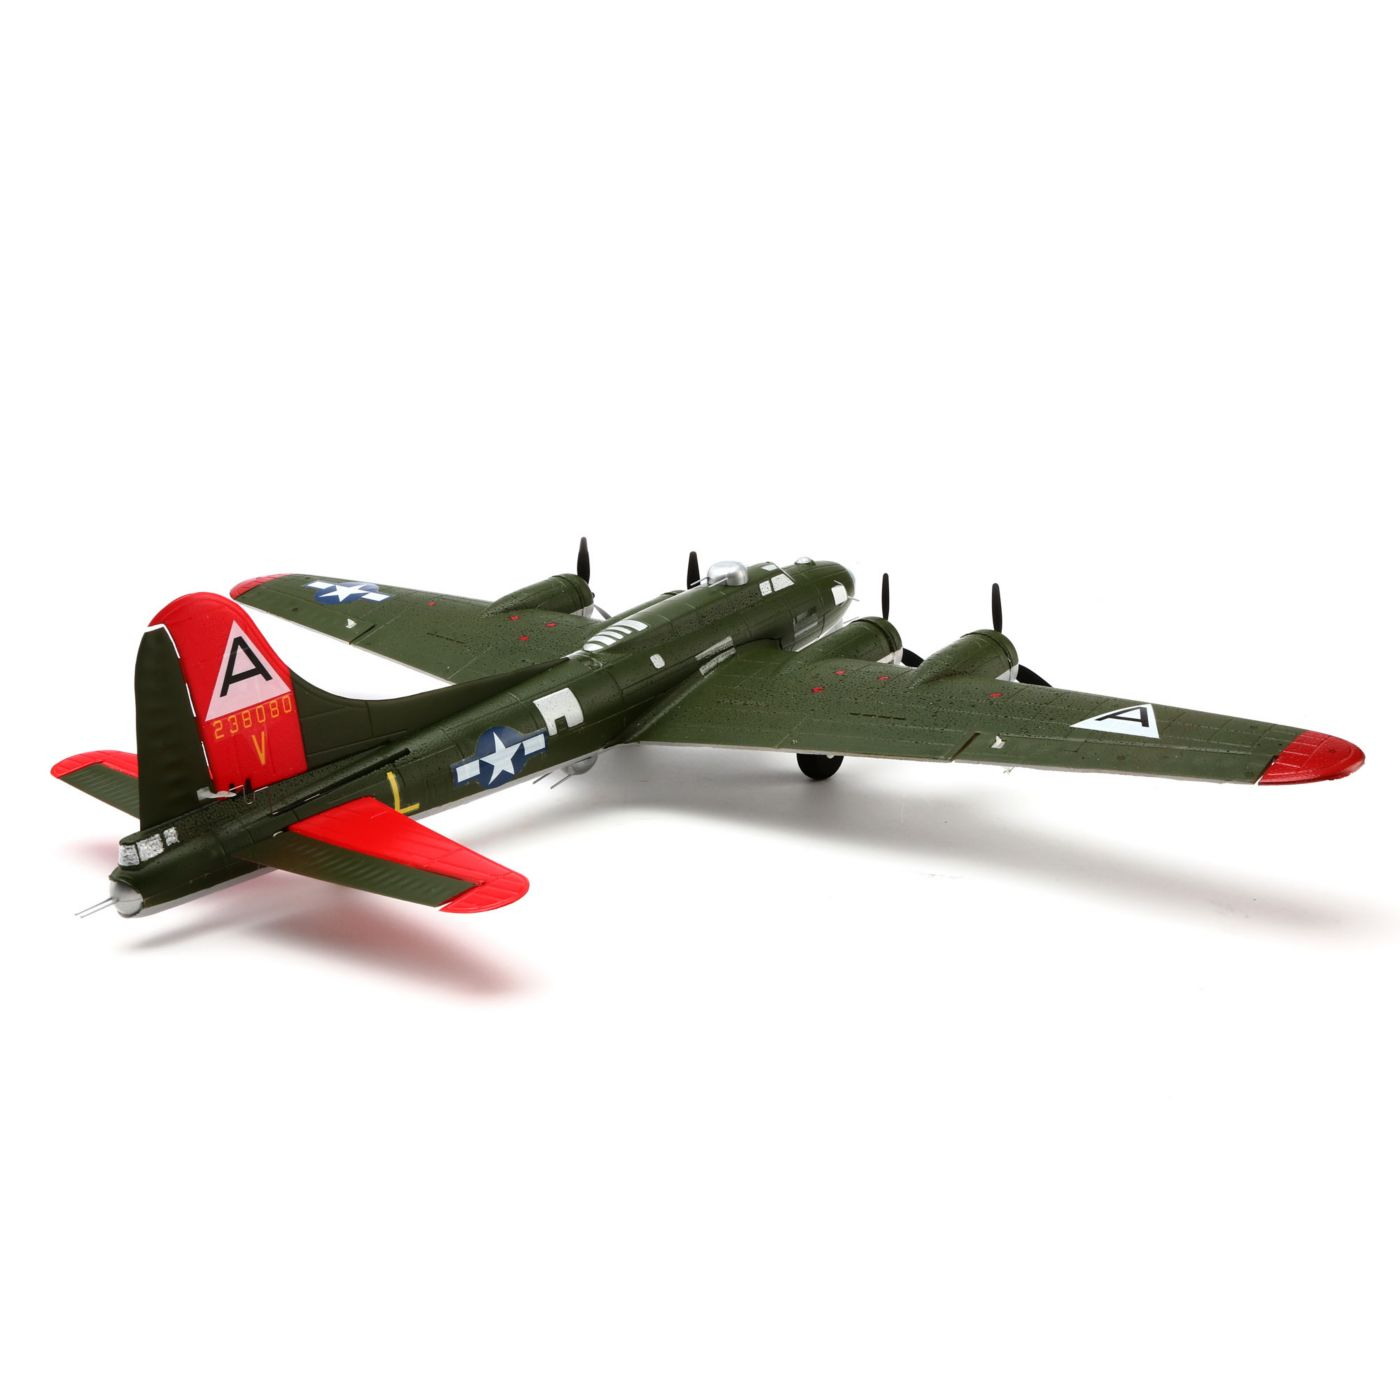 rc bnf planes with Flite Umx 17g Flying Fortress Bnf P 19457 on Se5a Wwi Bnf Pkz5580 additionally Walkera V450bd5 Airwolfe 450 Size Scale Design New moreover Rc Plane Motor Selection moreover Rc Electric Planes together with Armattan Quads.